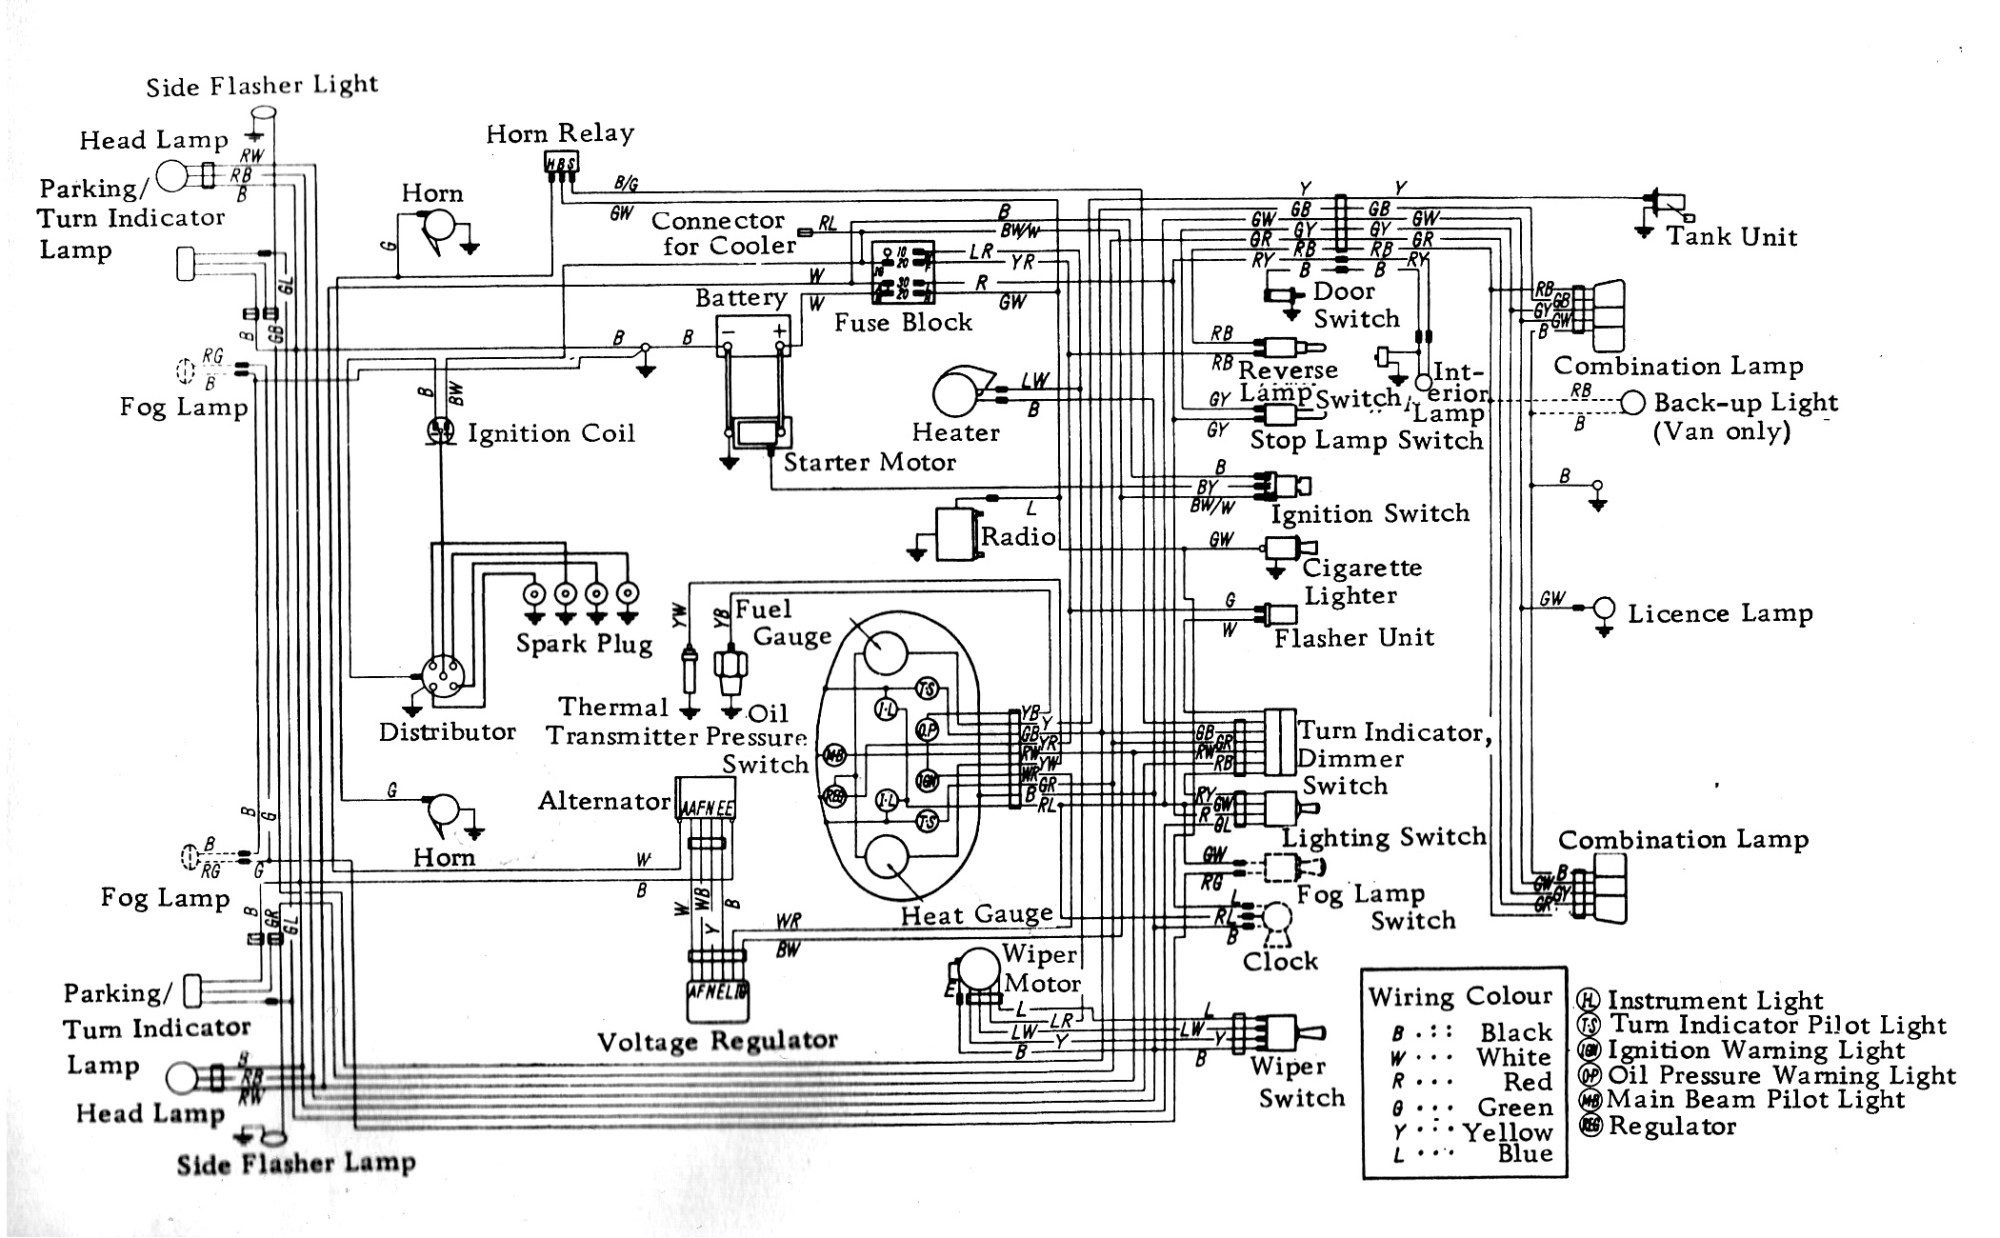 hight resolution of nissan 720 wiring diagram wiring diagram blog 1985 nissan 720 wiring diagram datsun 720 wiring diagram